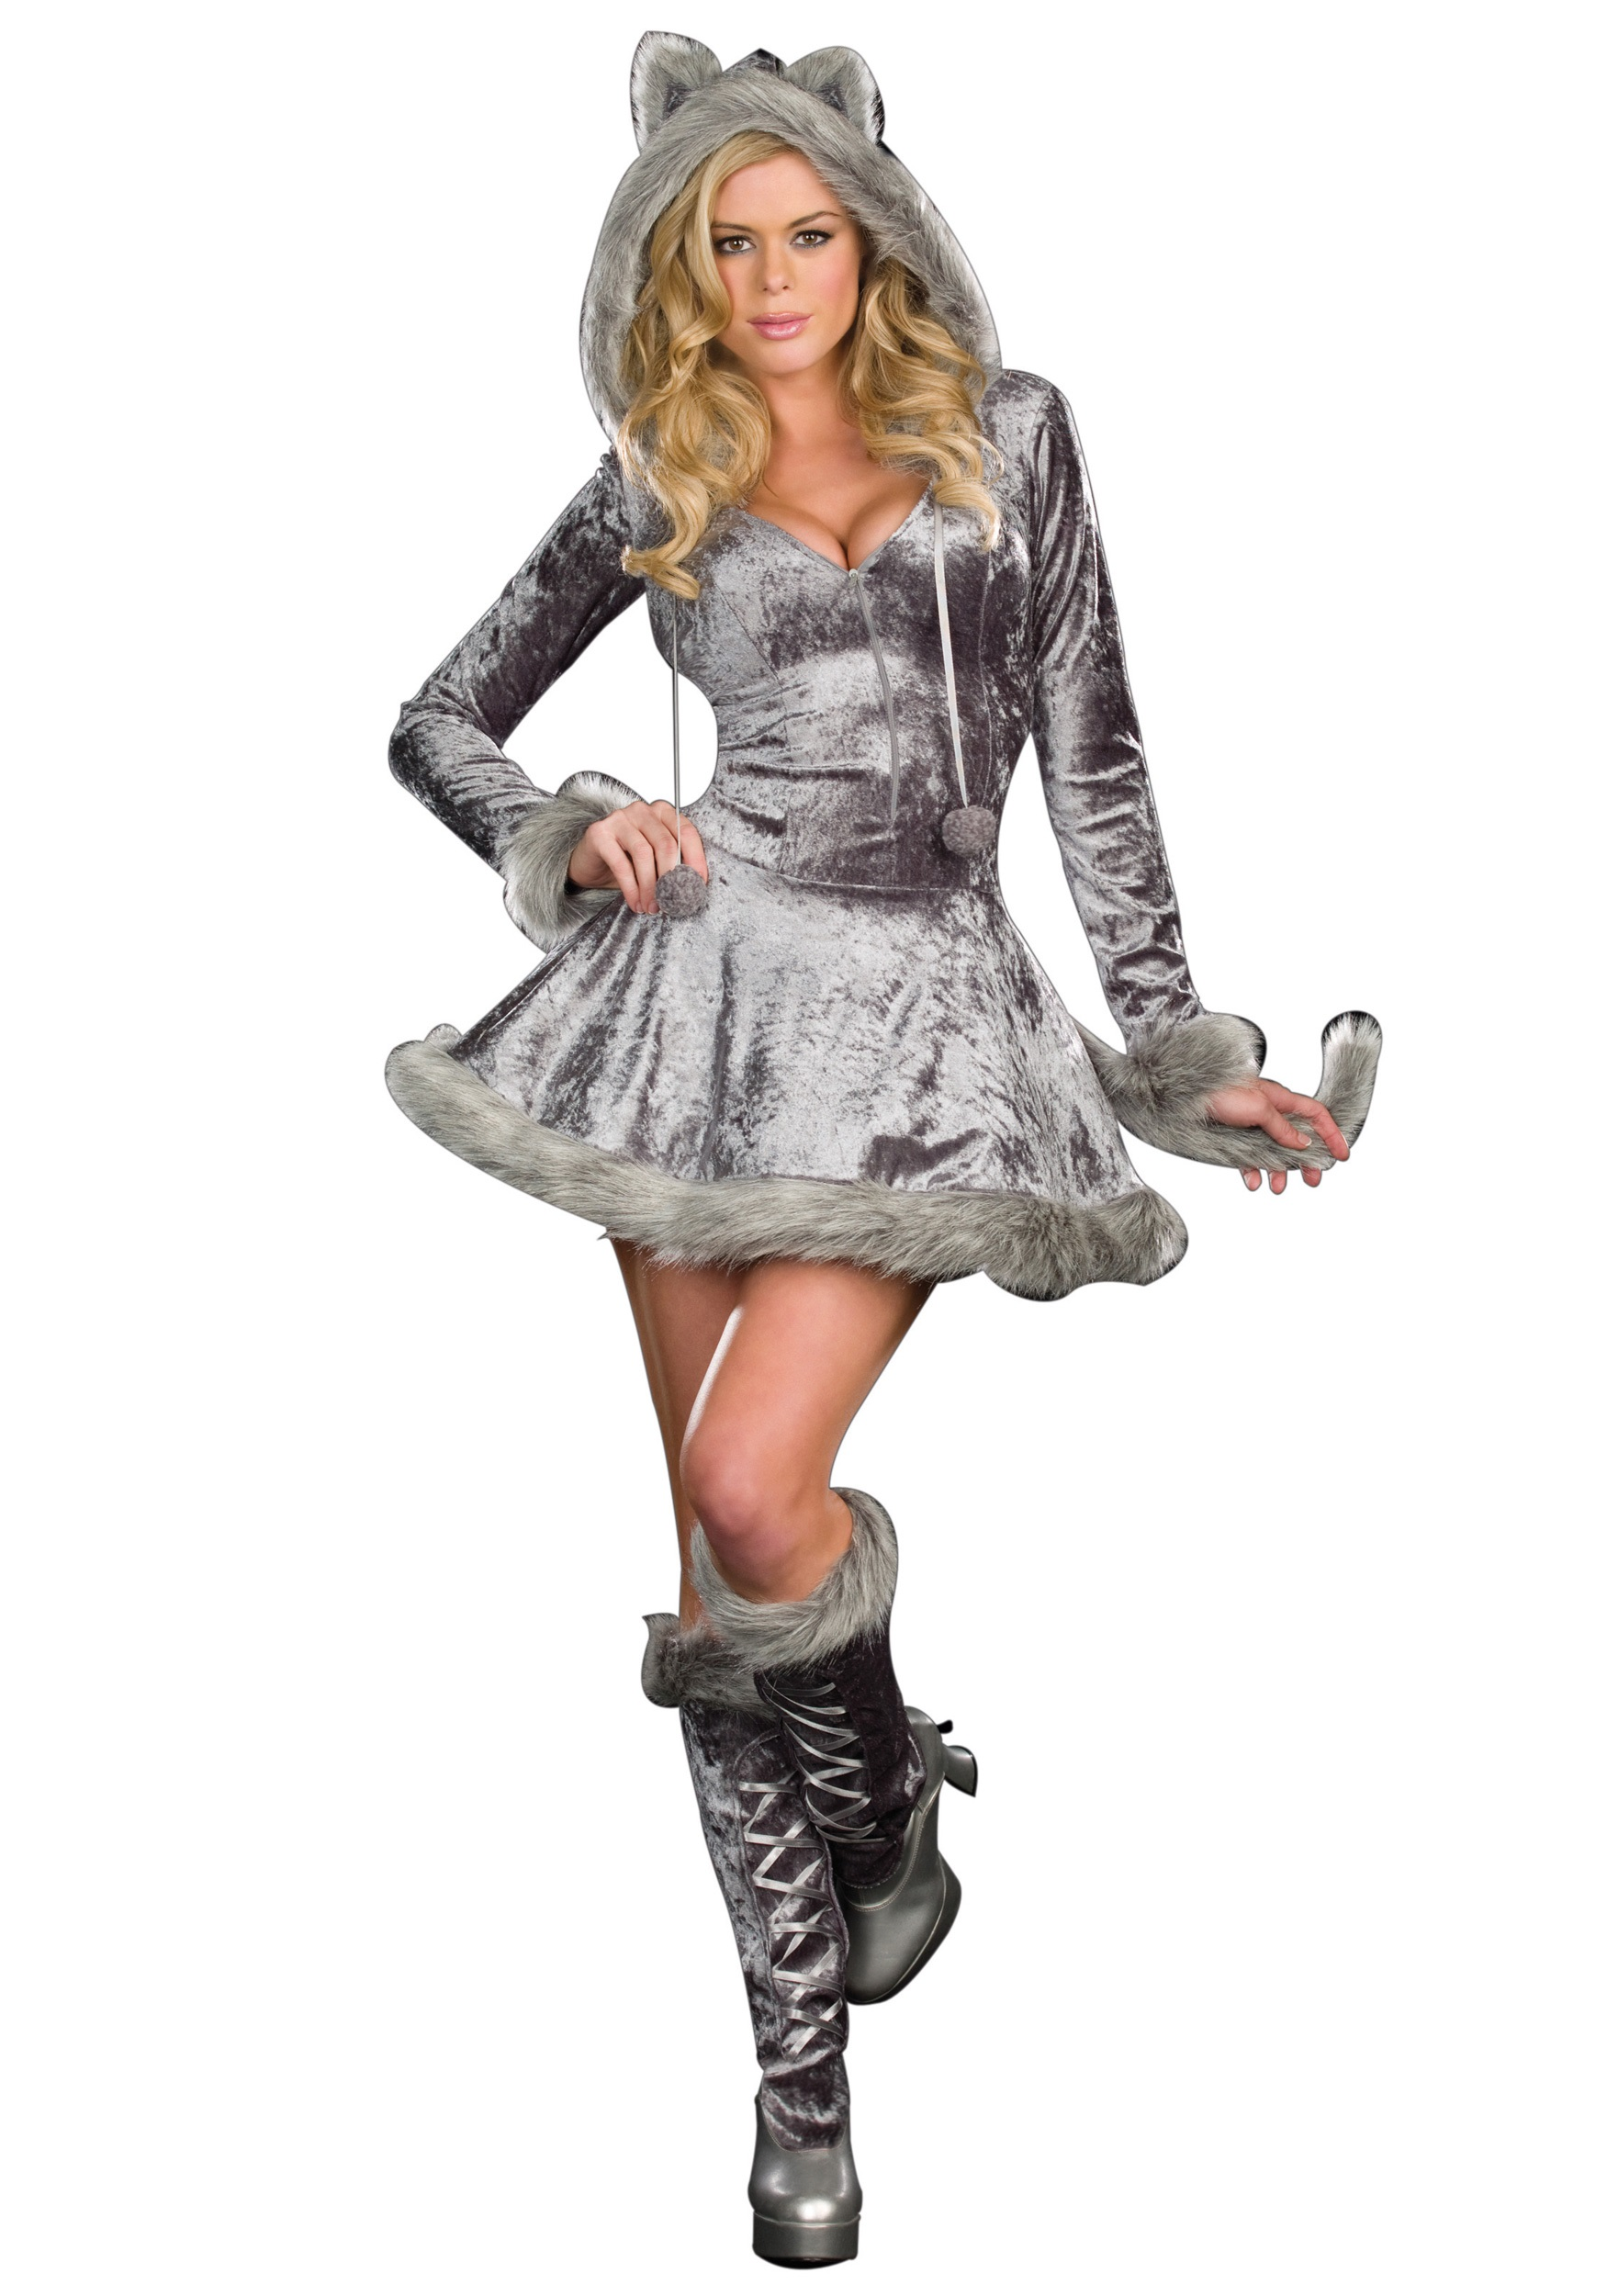 Big Bad Sexy Wolf Costume  sc 1 st  Halloween Costumes & Big Bad Sexy Wolf Costume - Halloween Costumes